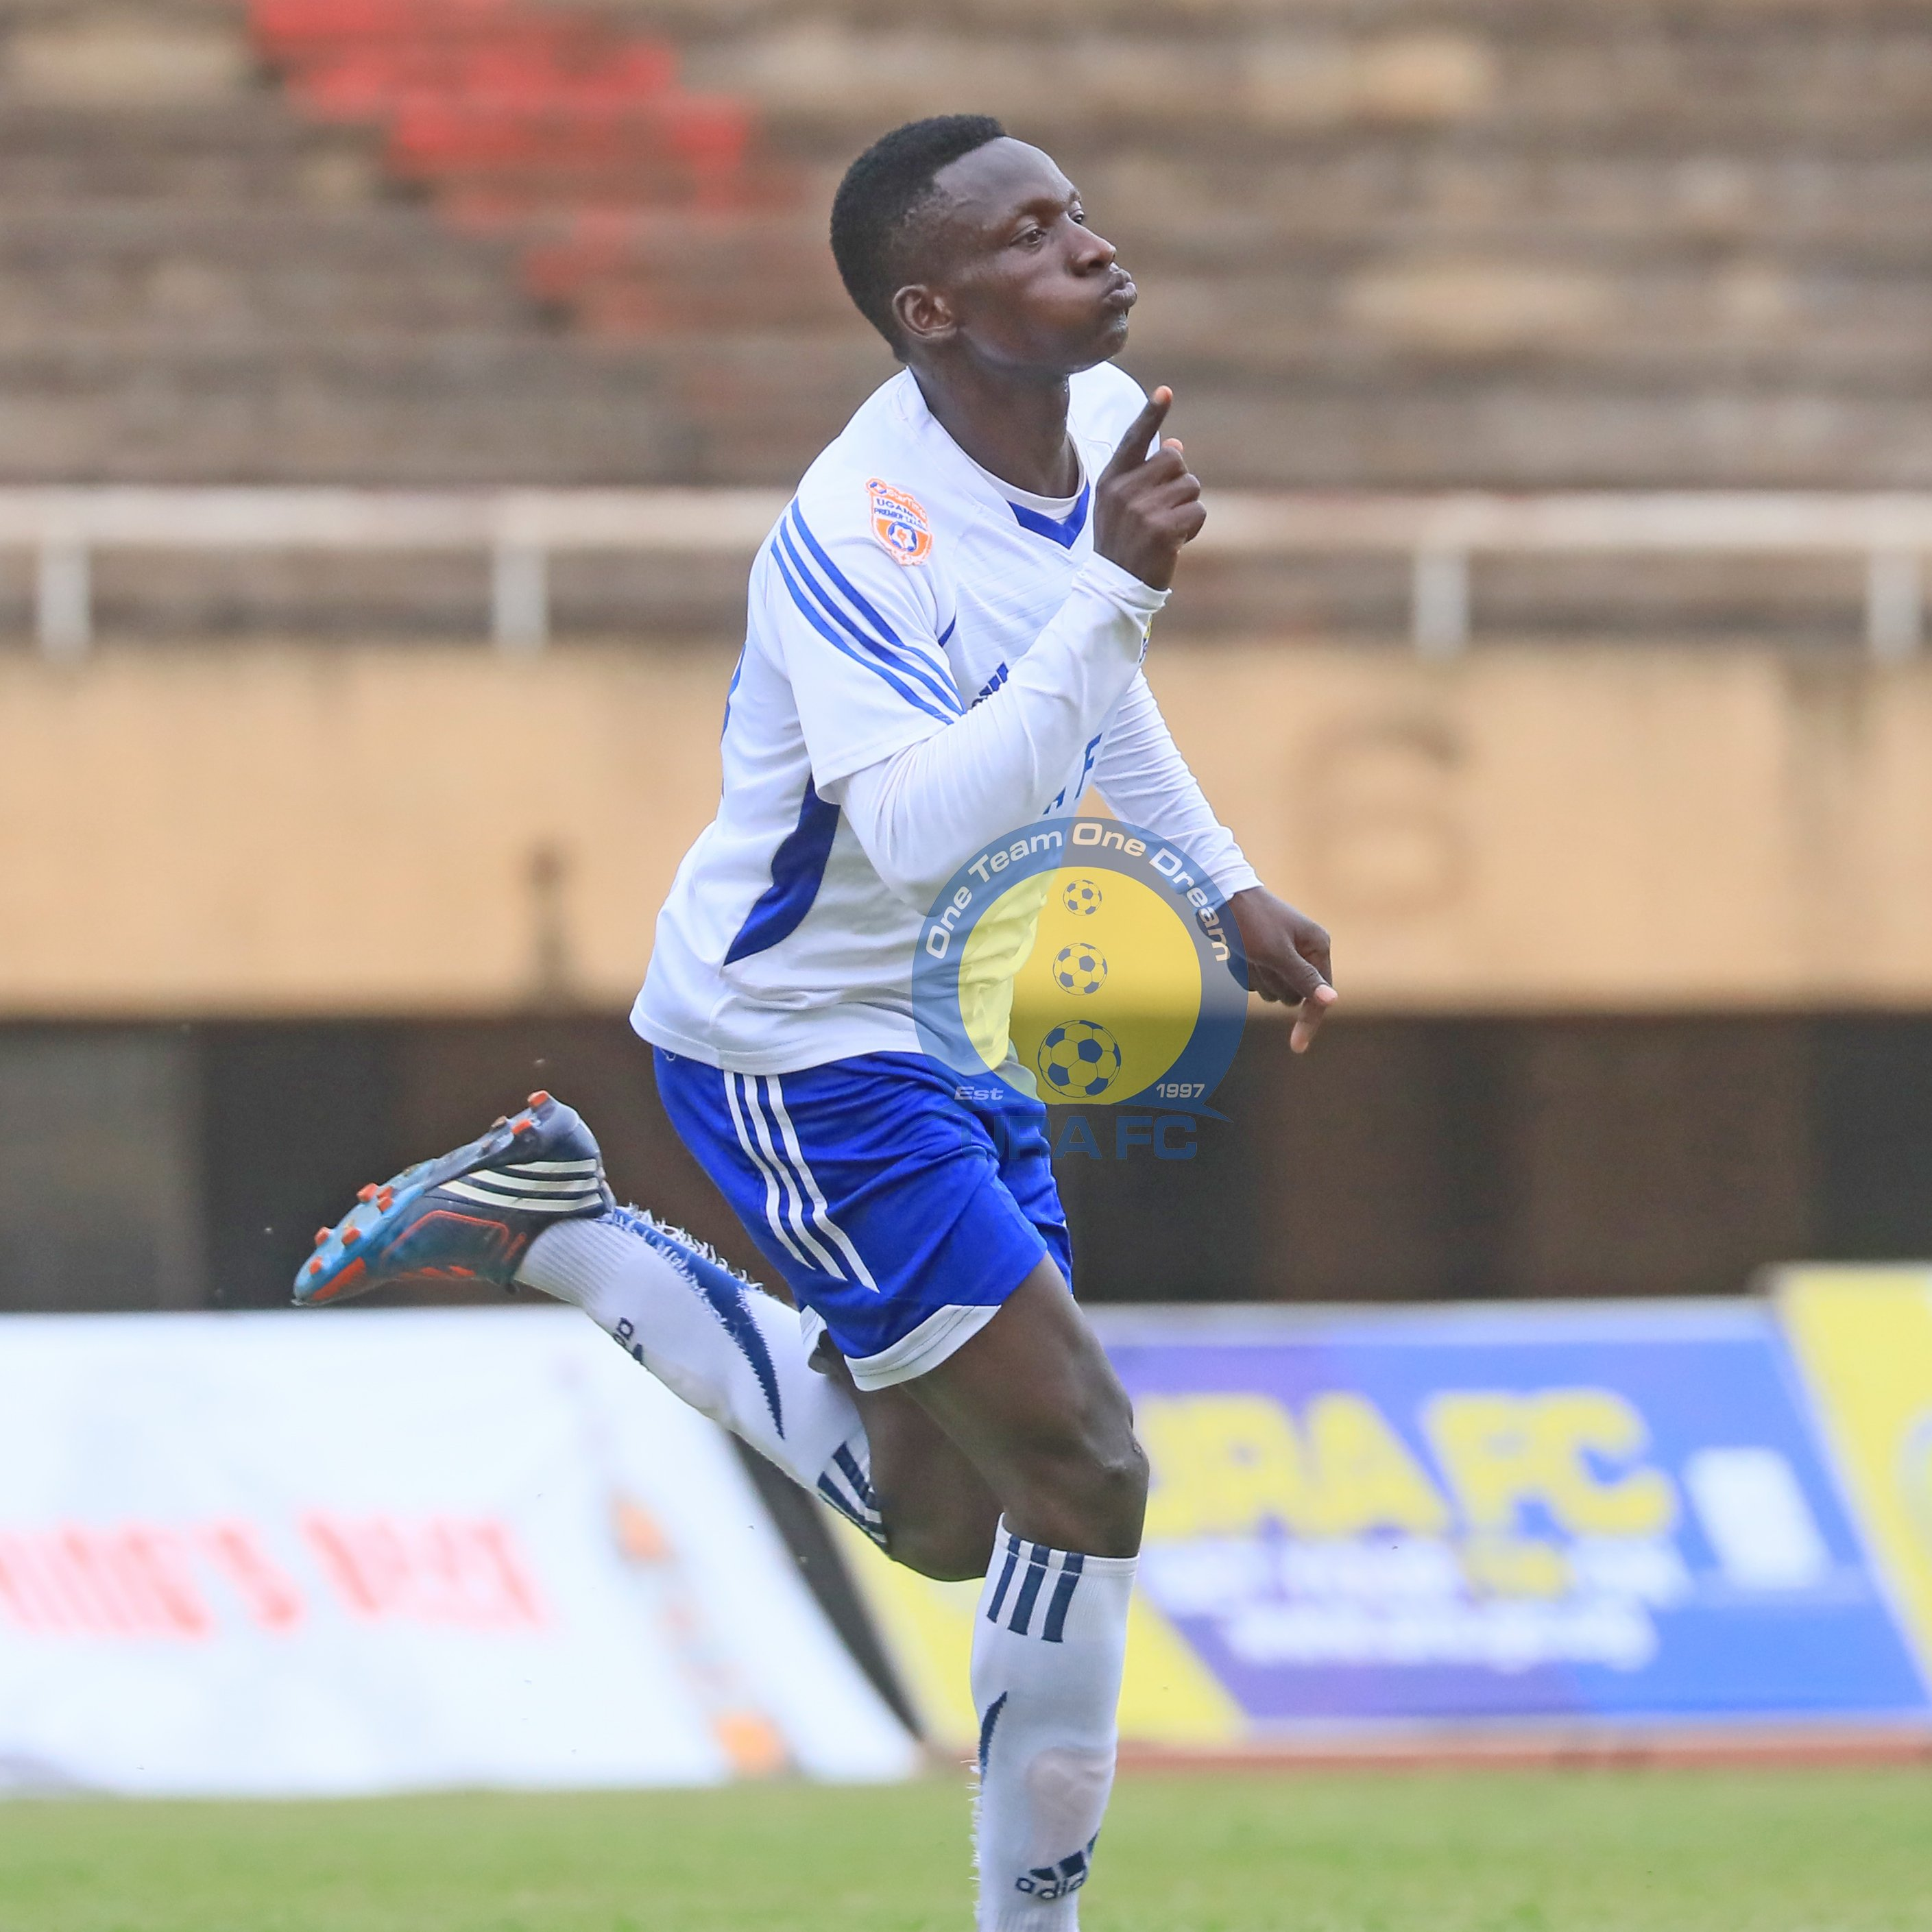 Cromwel Rwothomio scored the winner in the 2nd minute of added on time. (PHOTO/File)